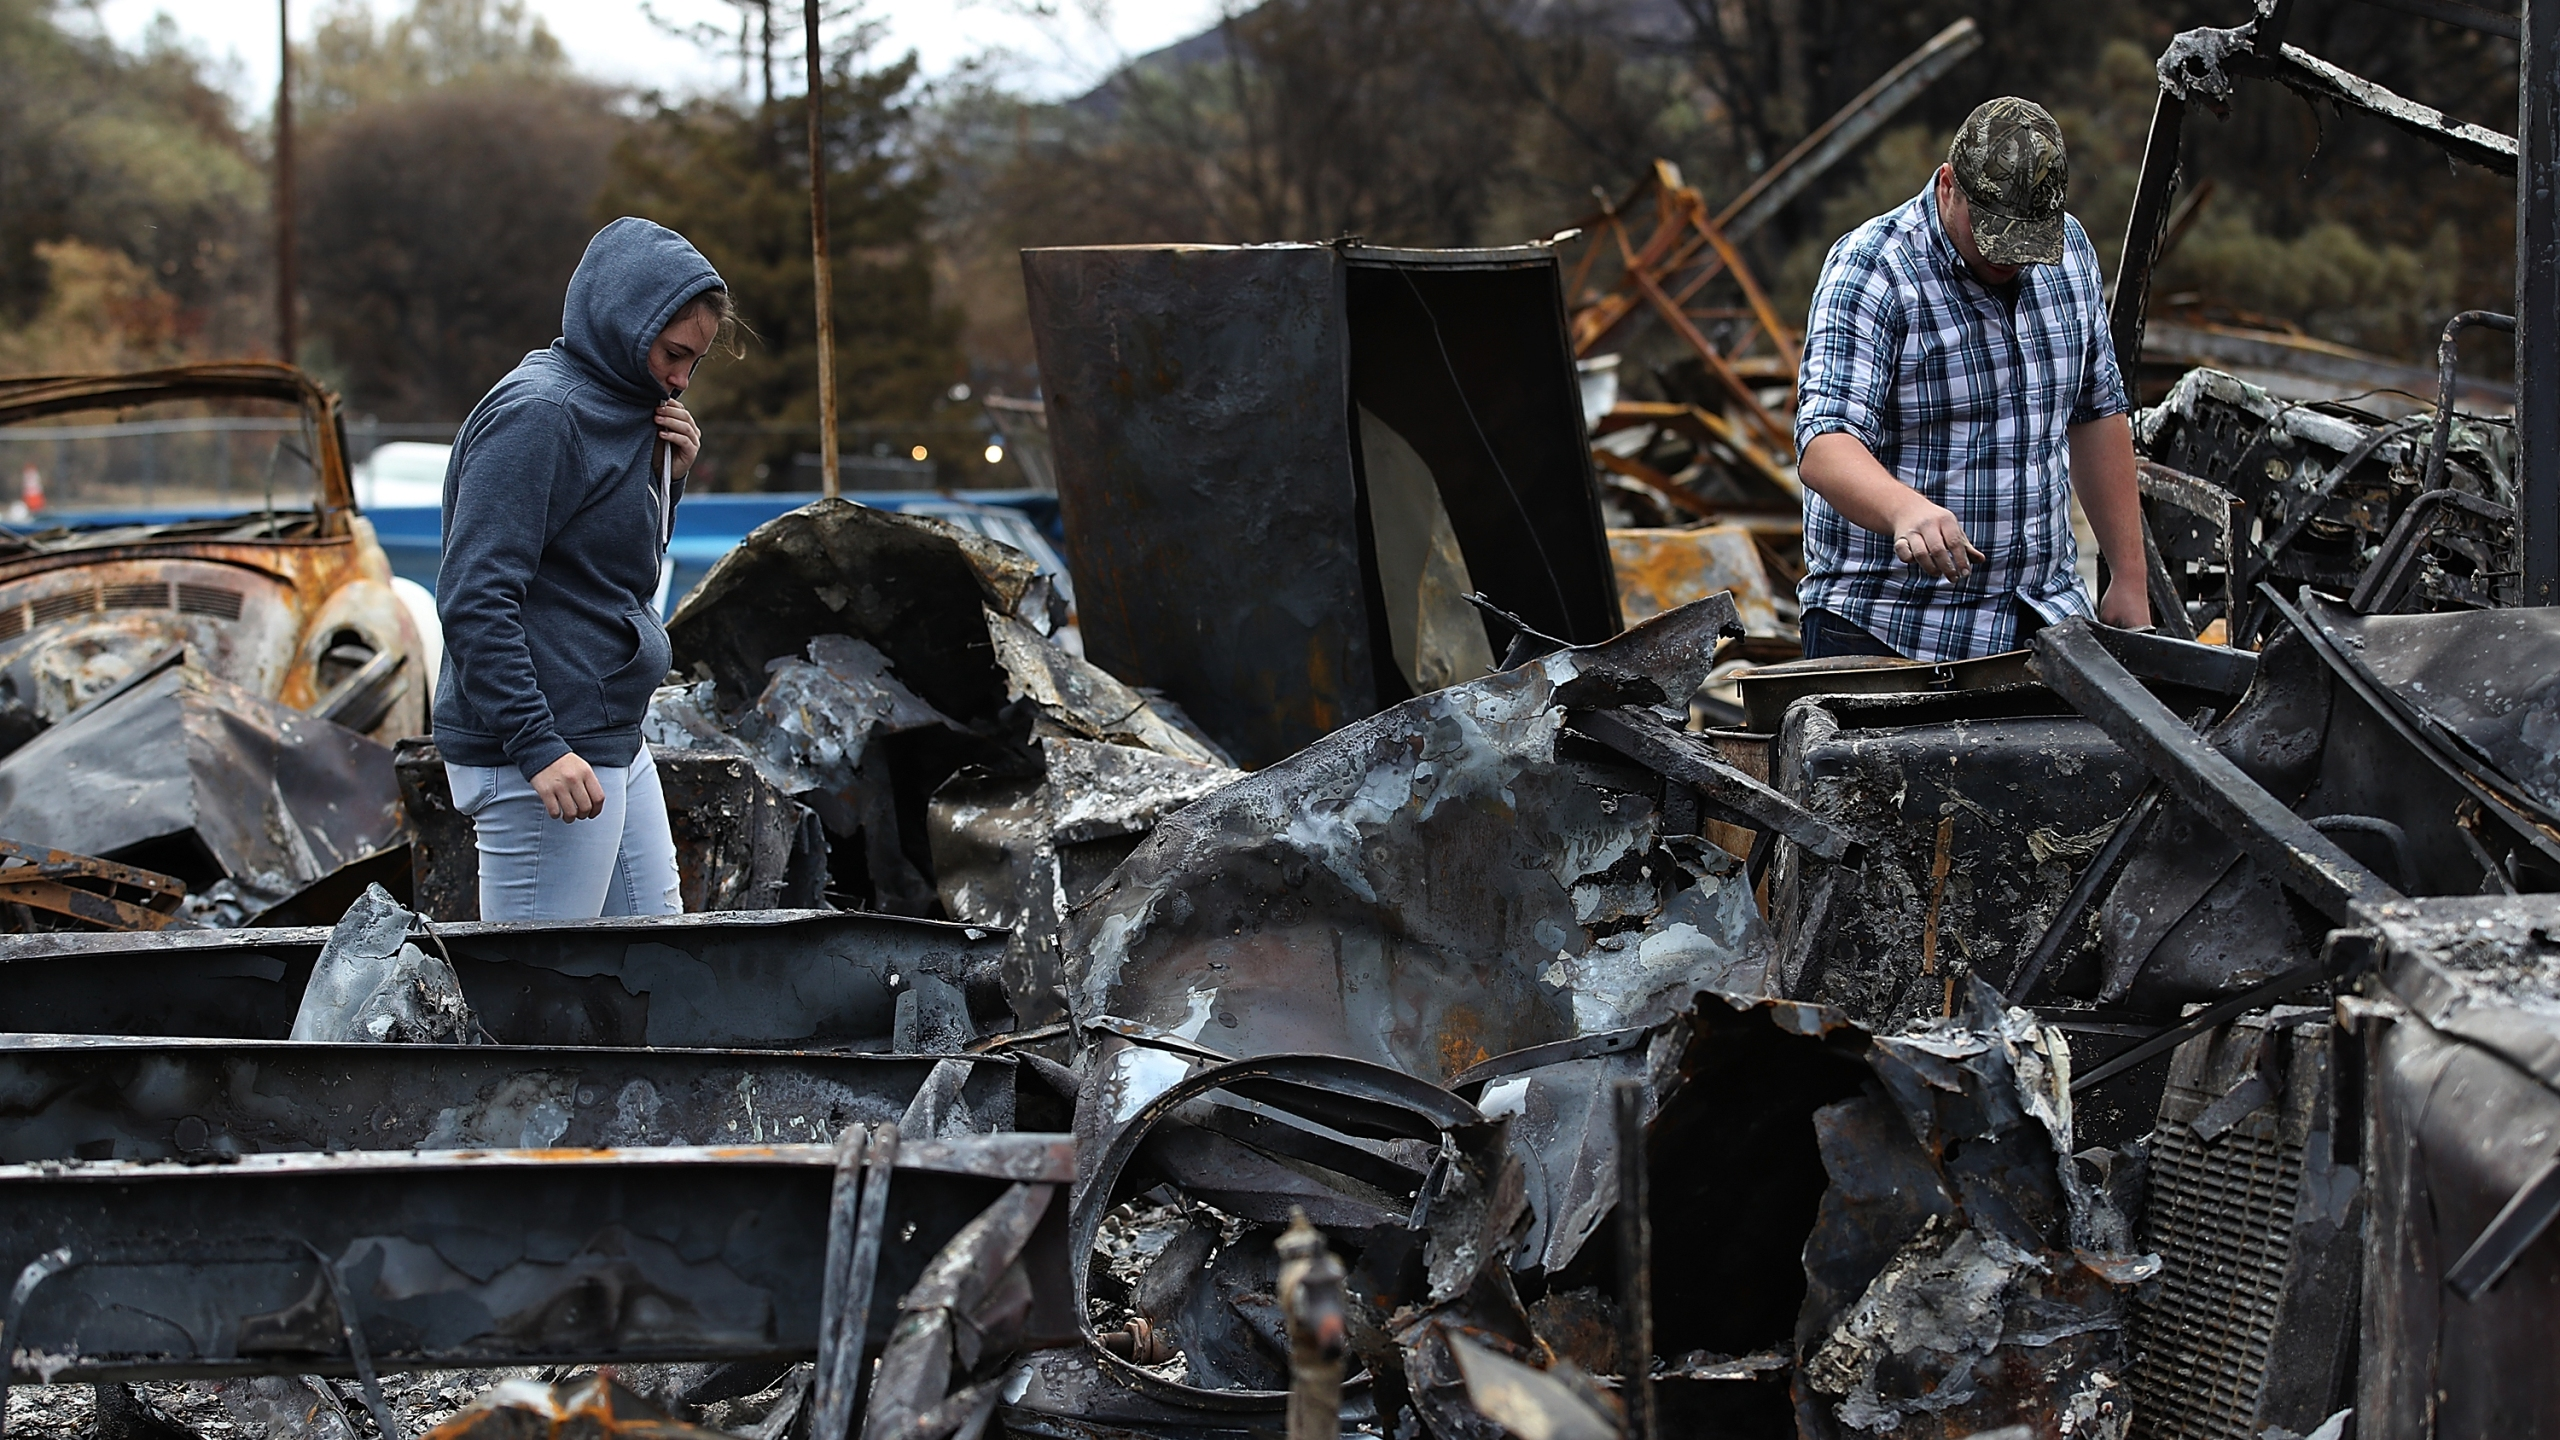 Noah Fisher, right, and Dusty Cope look through the remains of their home that was destroyed by the Camp Fire, Nov. 22, 2018, in Paradise. (Credit: Justin Sullivan / Getty Images)